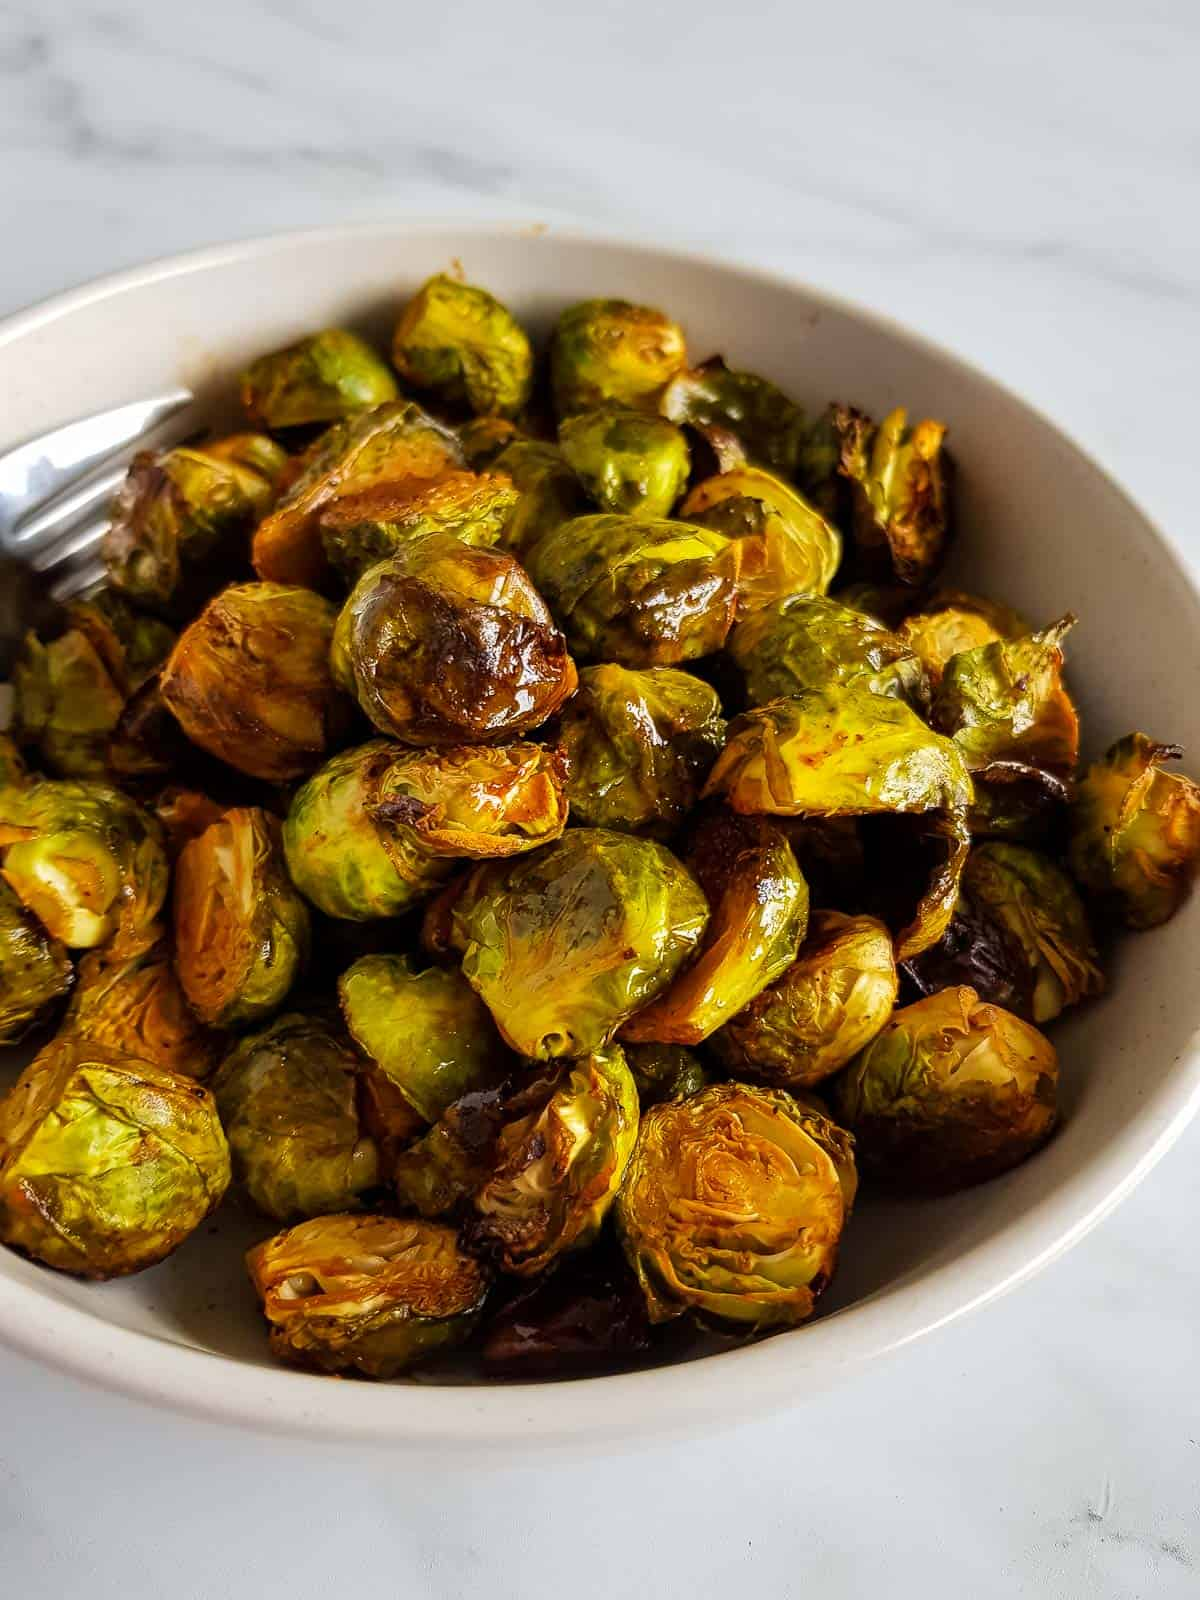 Brussels sprouts with sriracha and honey.